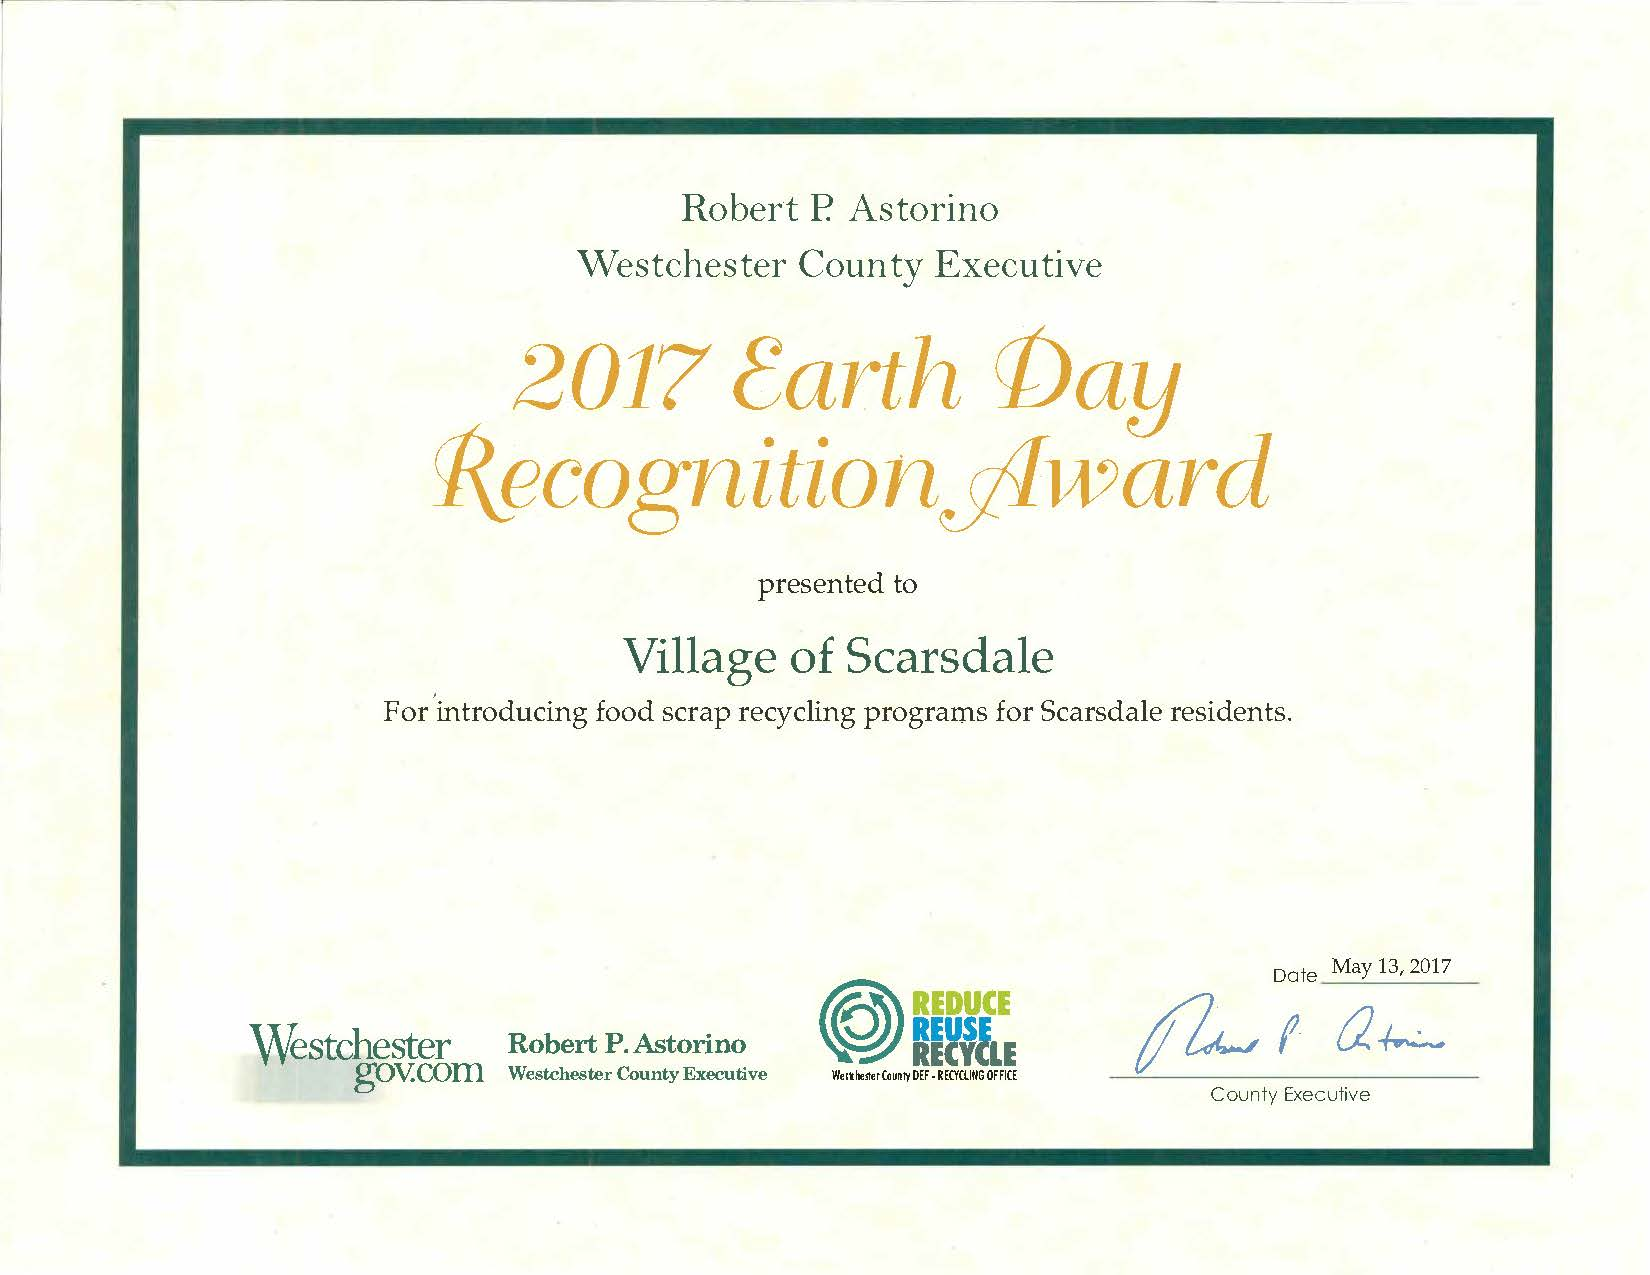 2017 Earth Day Award - Food Scrap Recycling